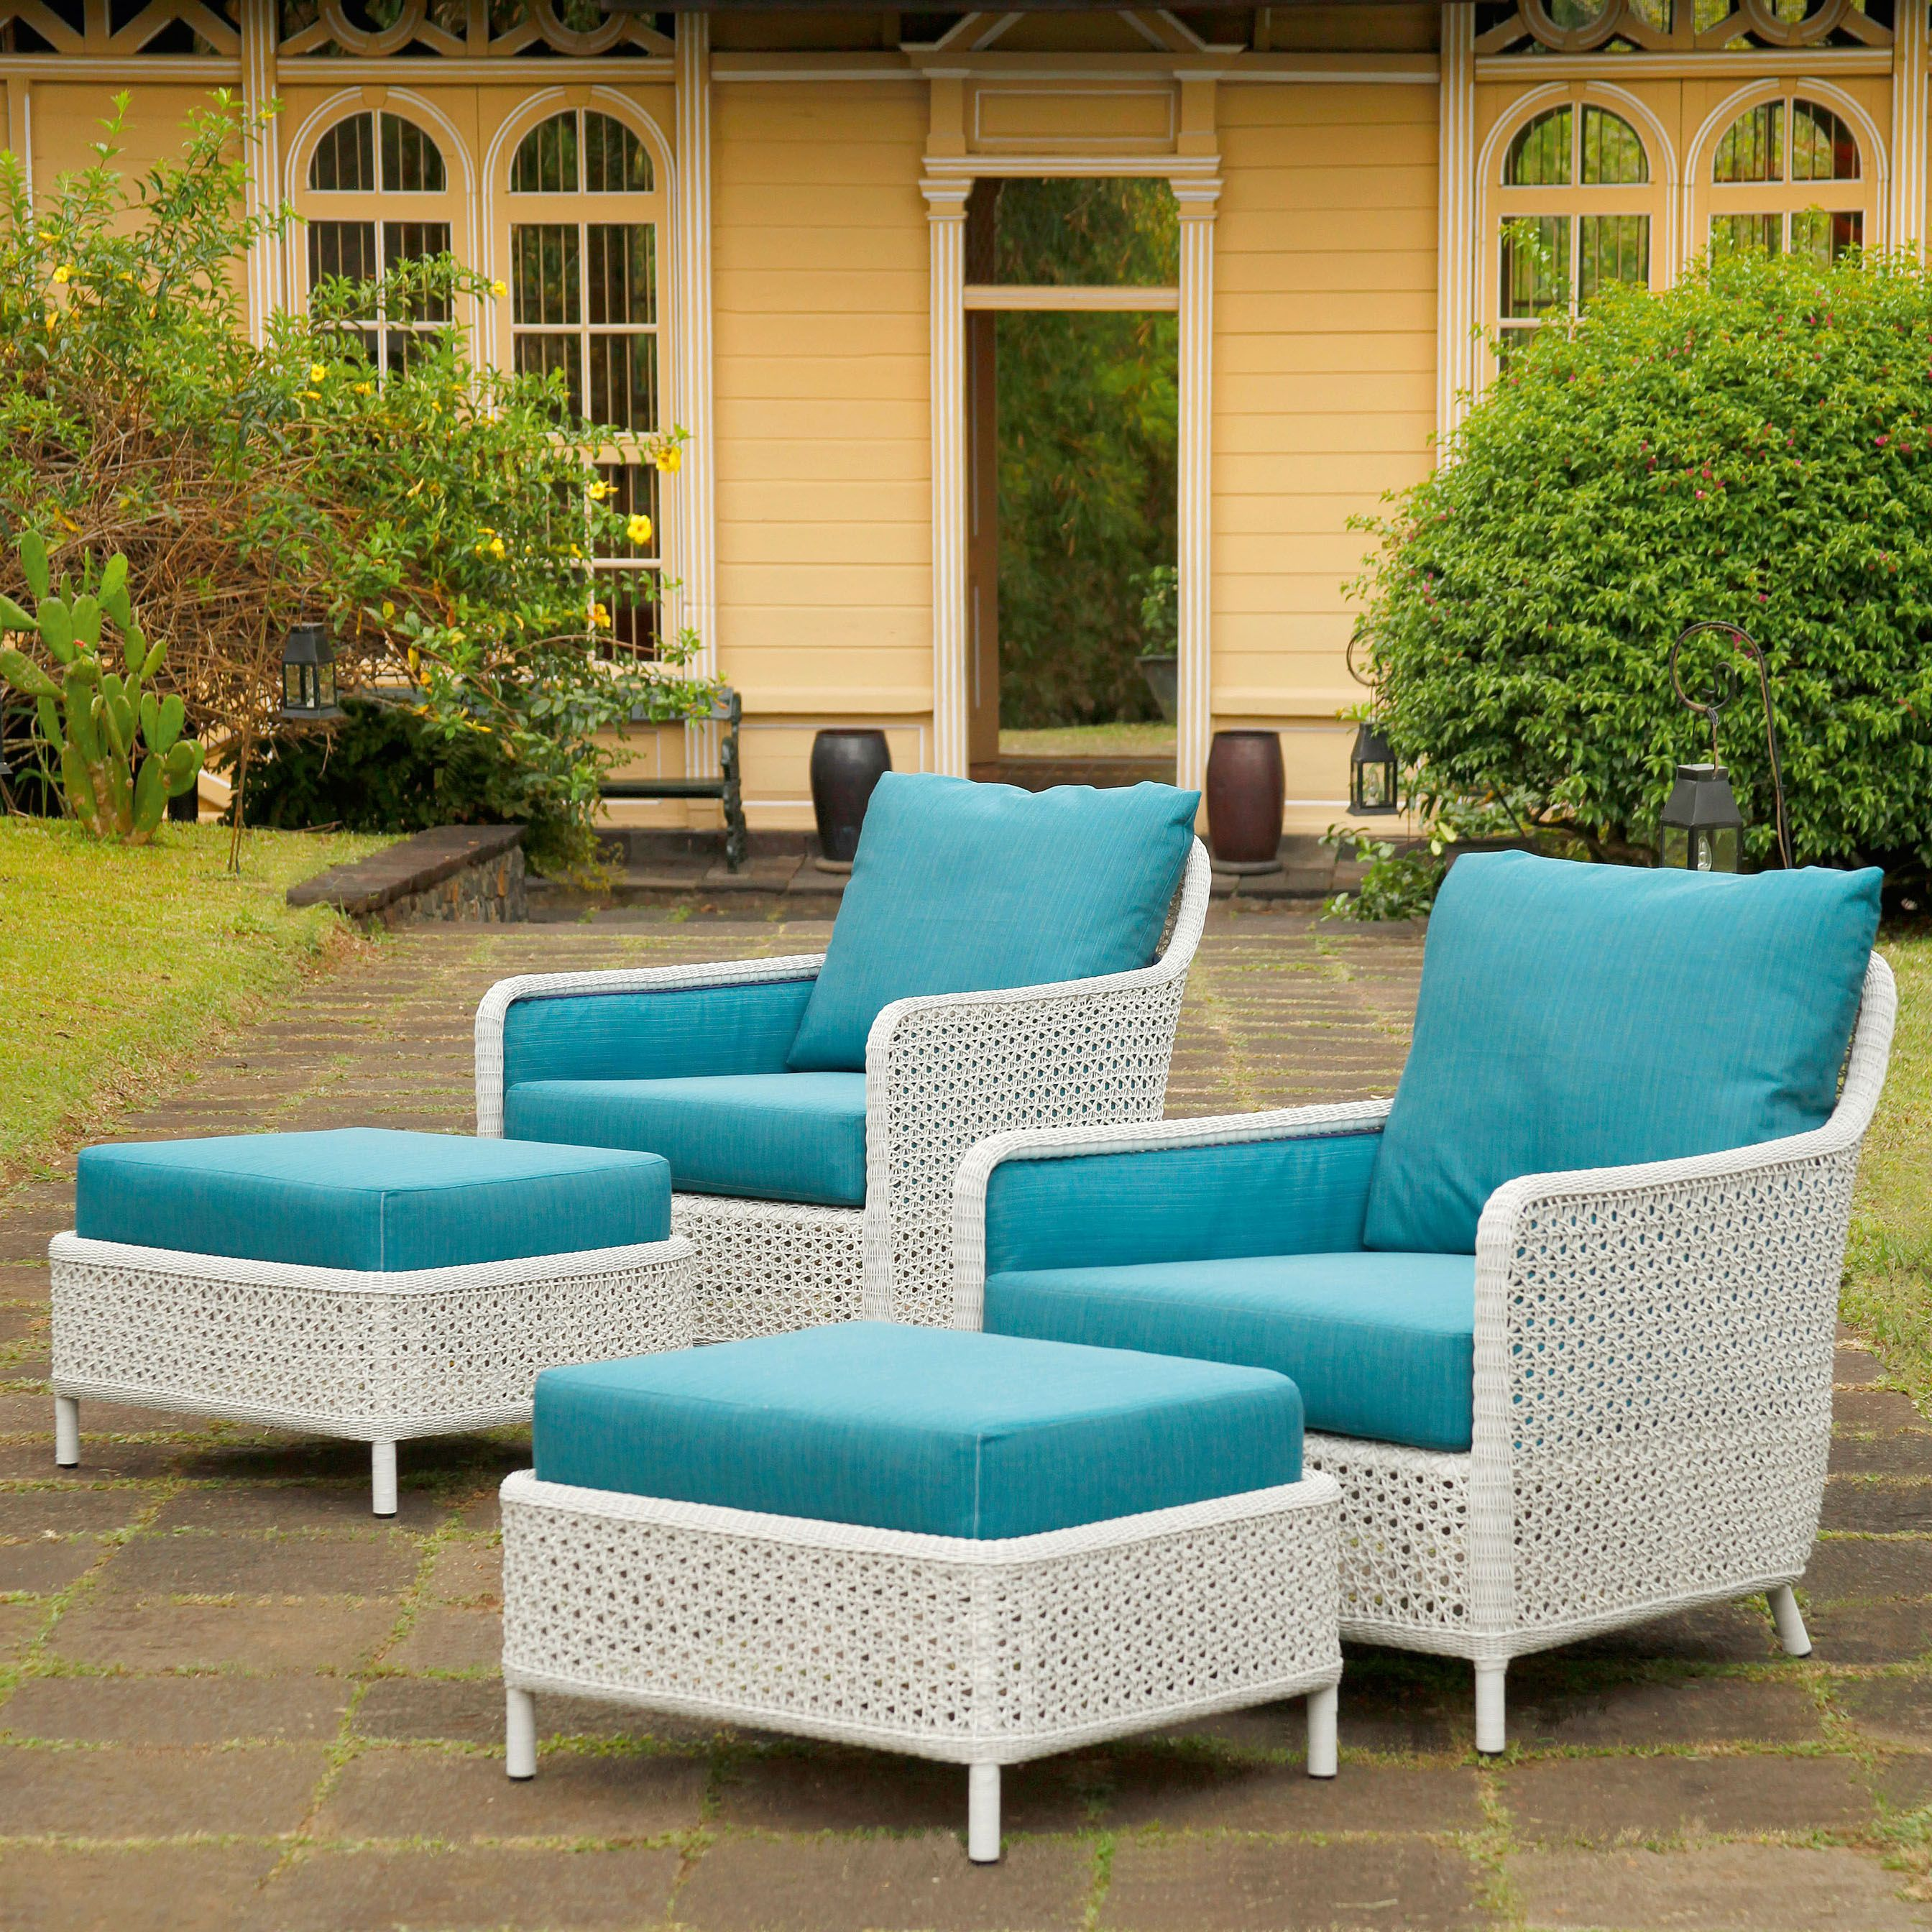 This stylish outdoor woven armchair and ottoman code from